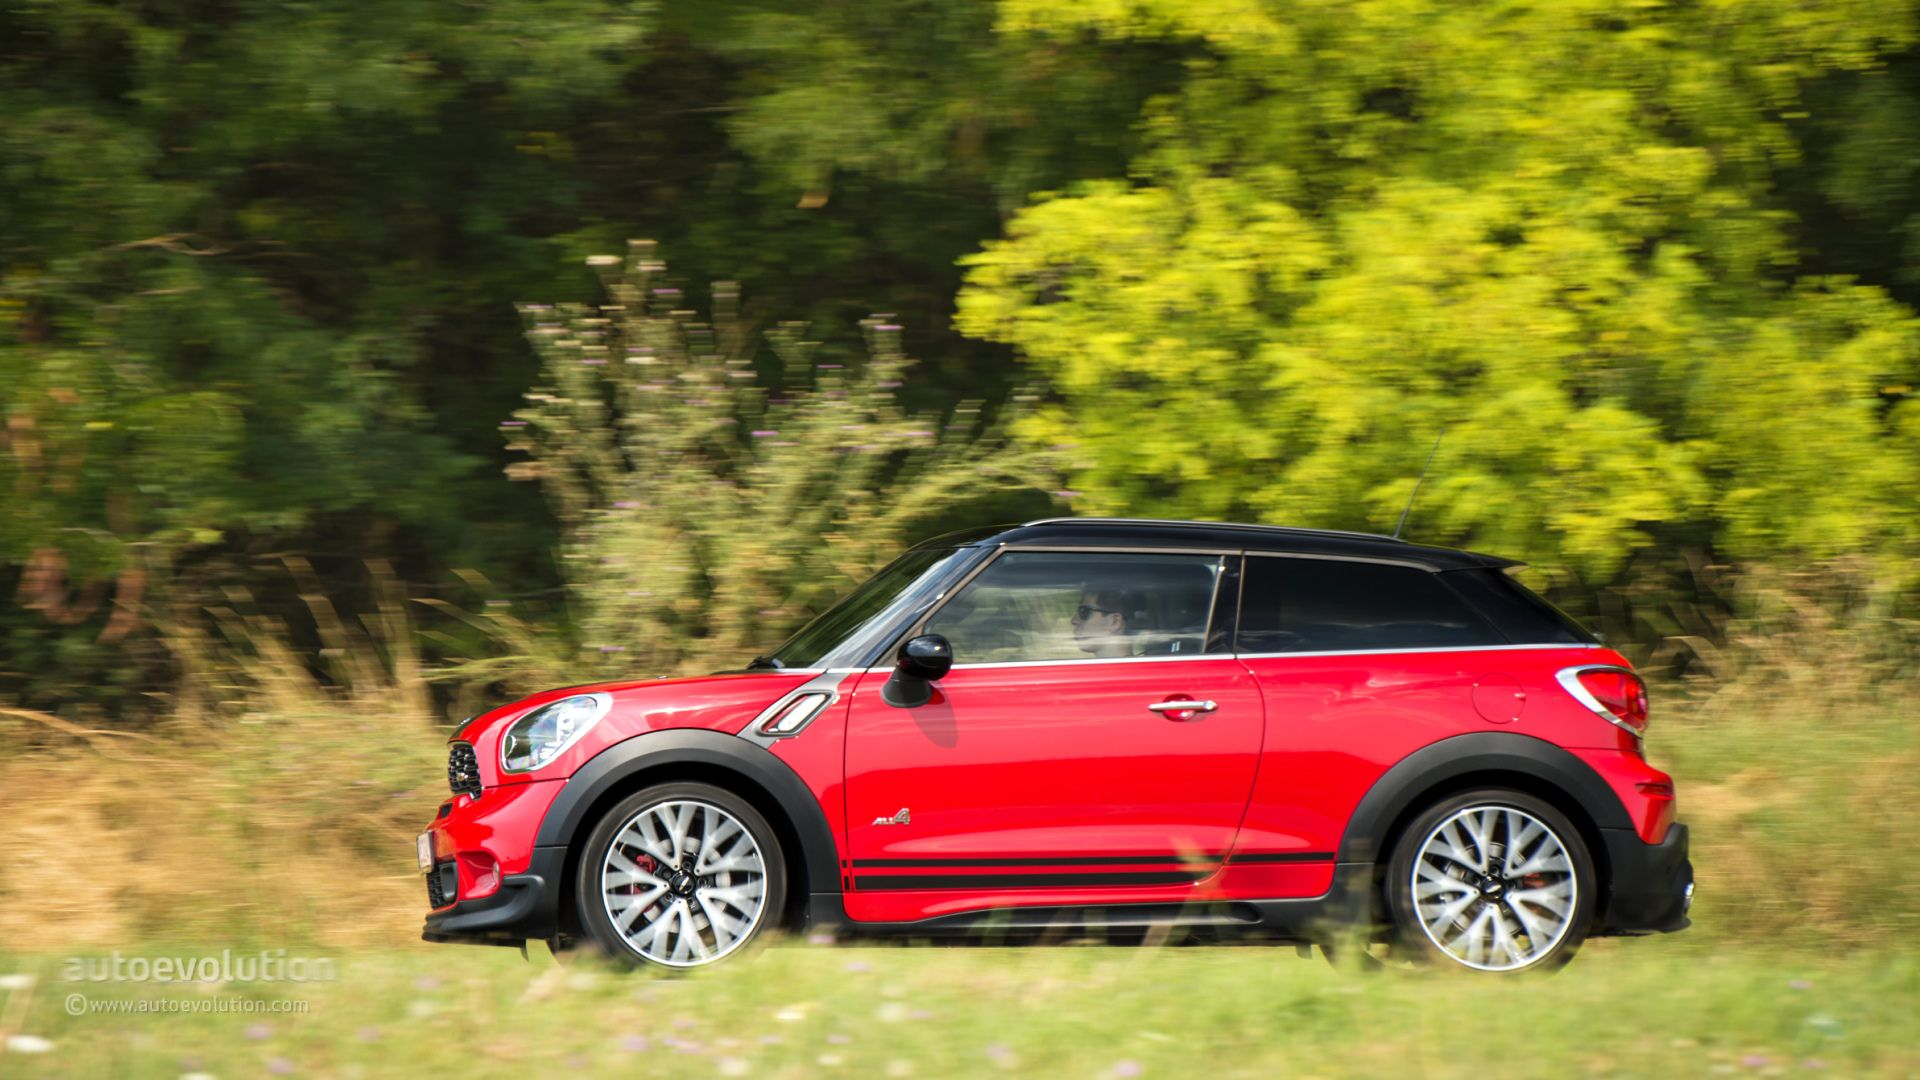 2015 mini john cooper works all4 paceman review http www autoevolution